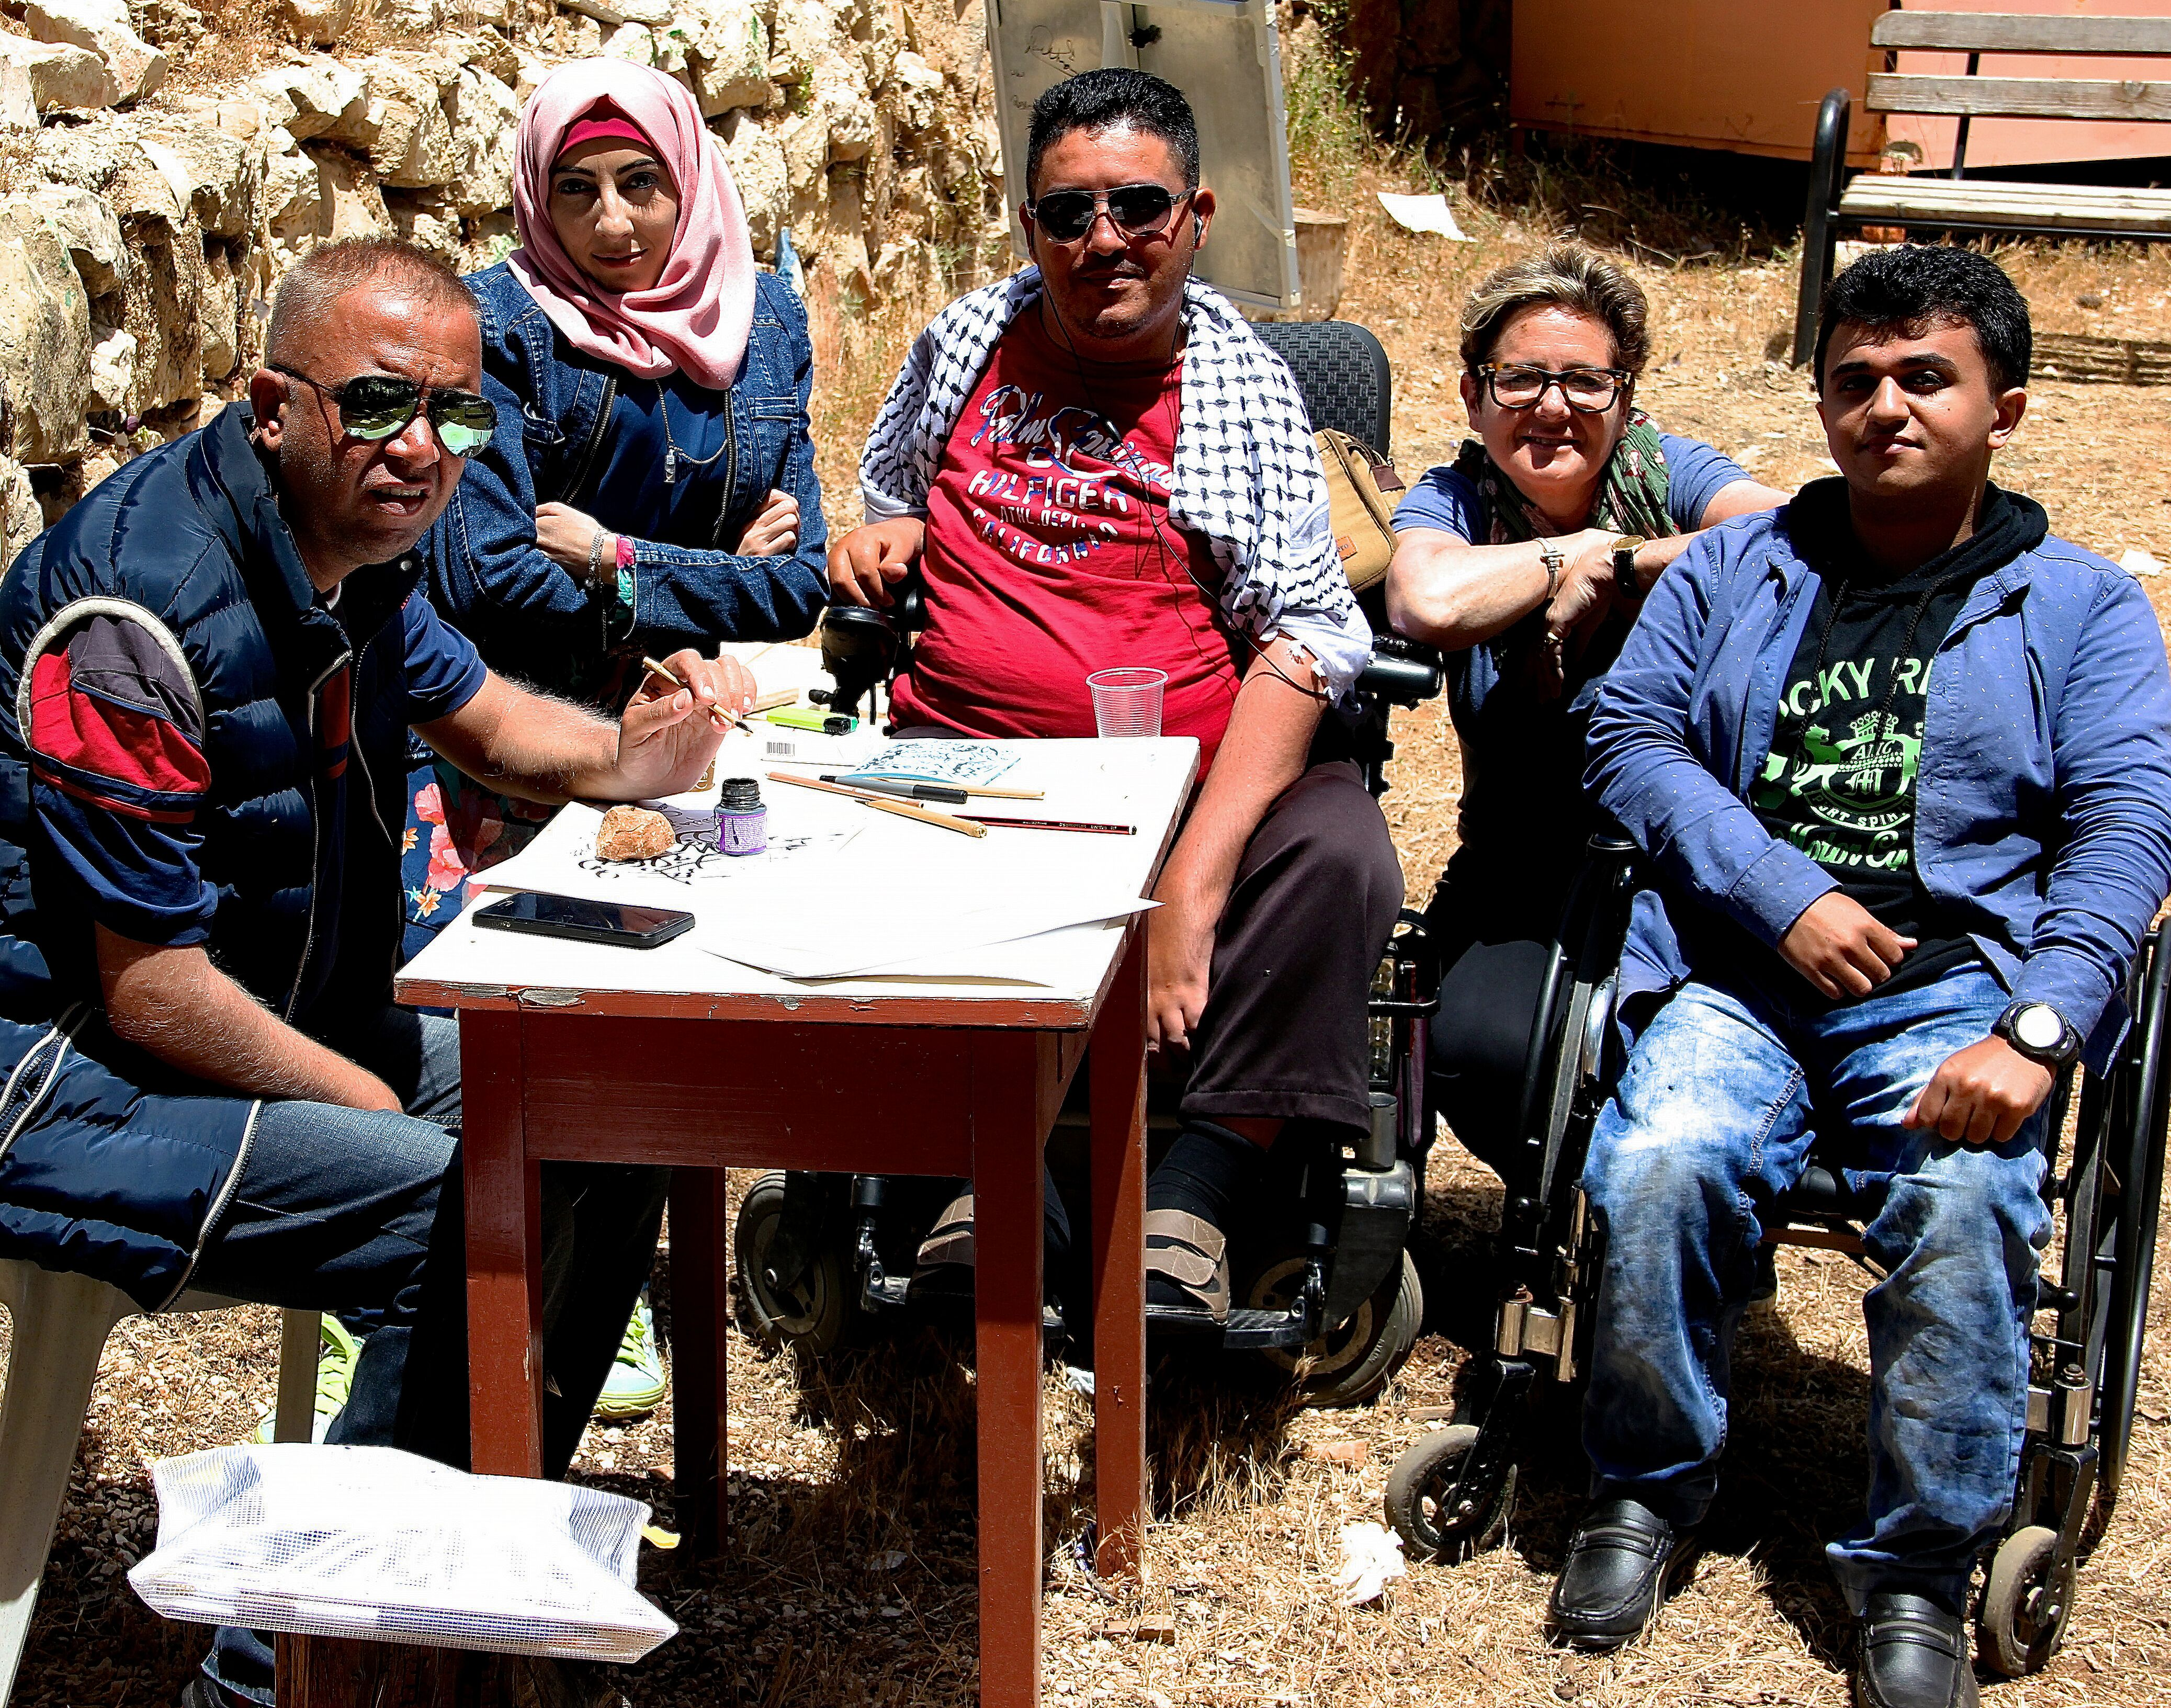 A group photo where Rachel is sat around a table with artists Ali Saied Ashour, Amna Hussein, Hosaam Khdair and Mahmoud Abu Daghash. They are working outside in the sun and are all looking directly into the camera.